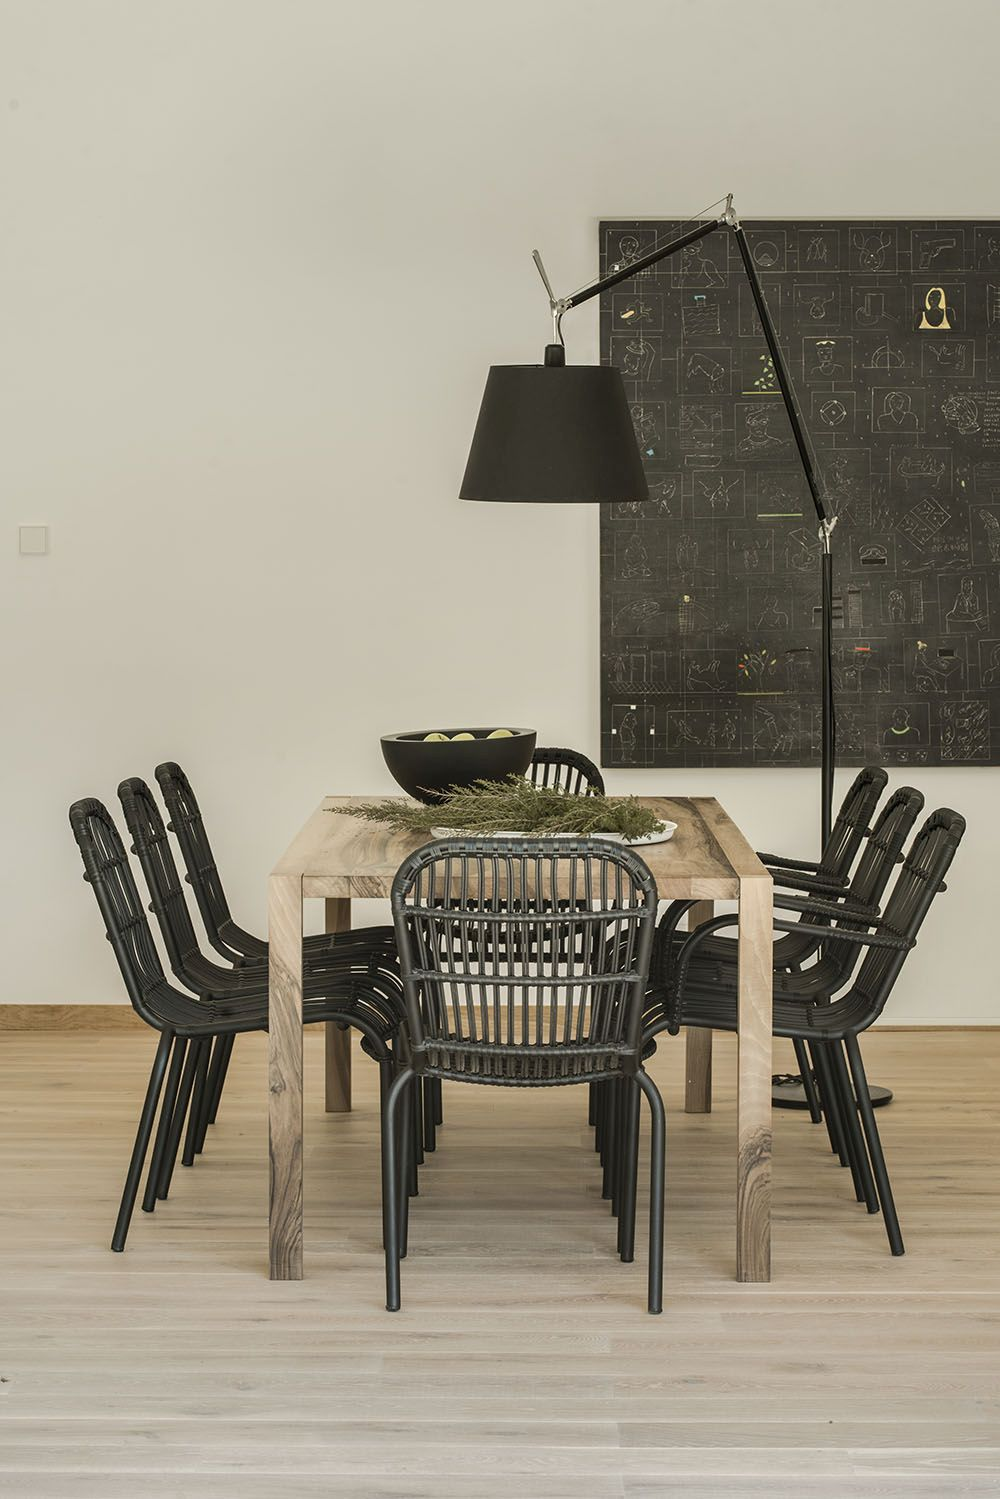 The artwork is also black and helps define the dining area.